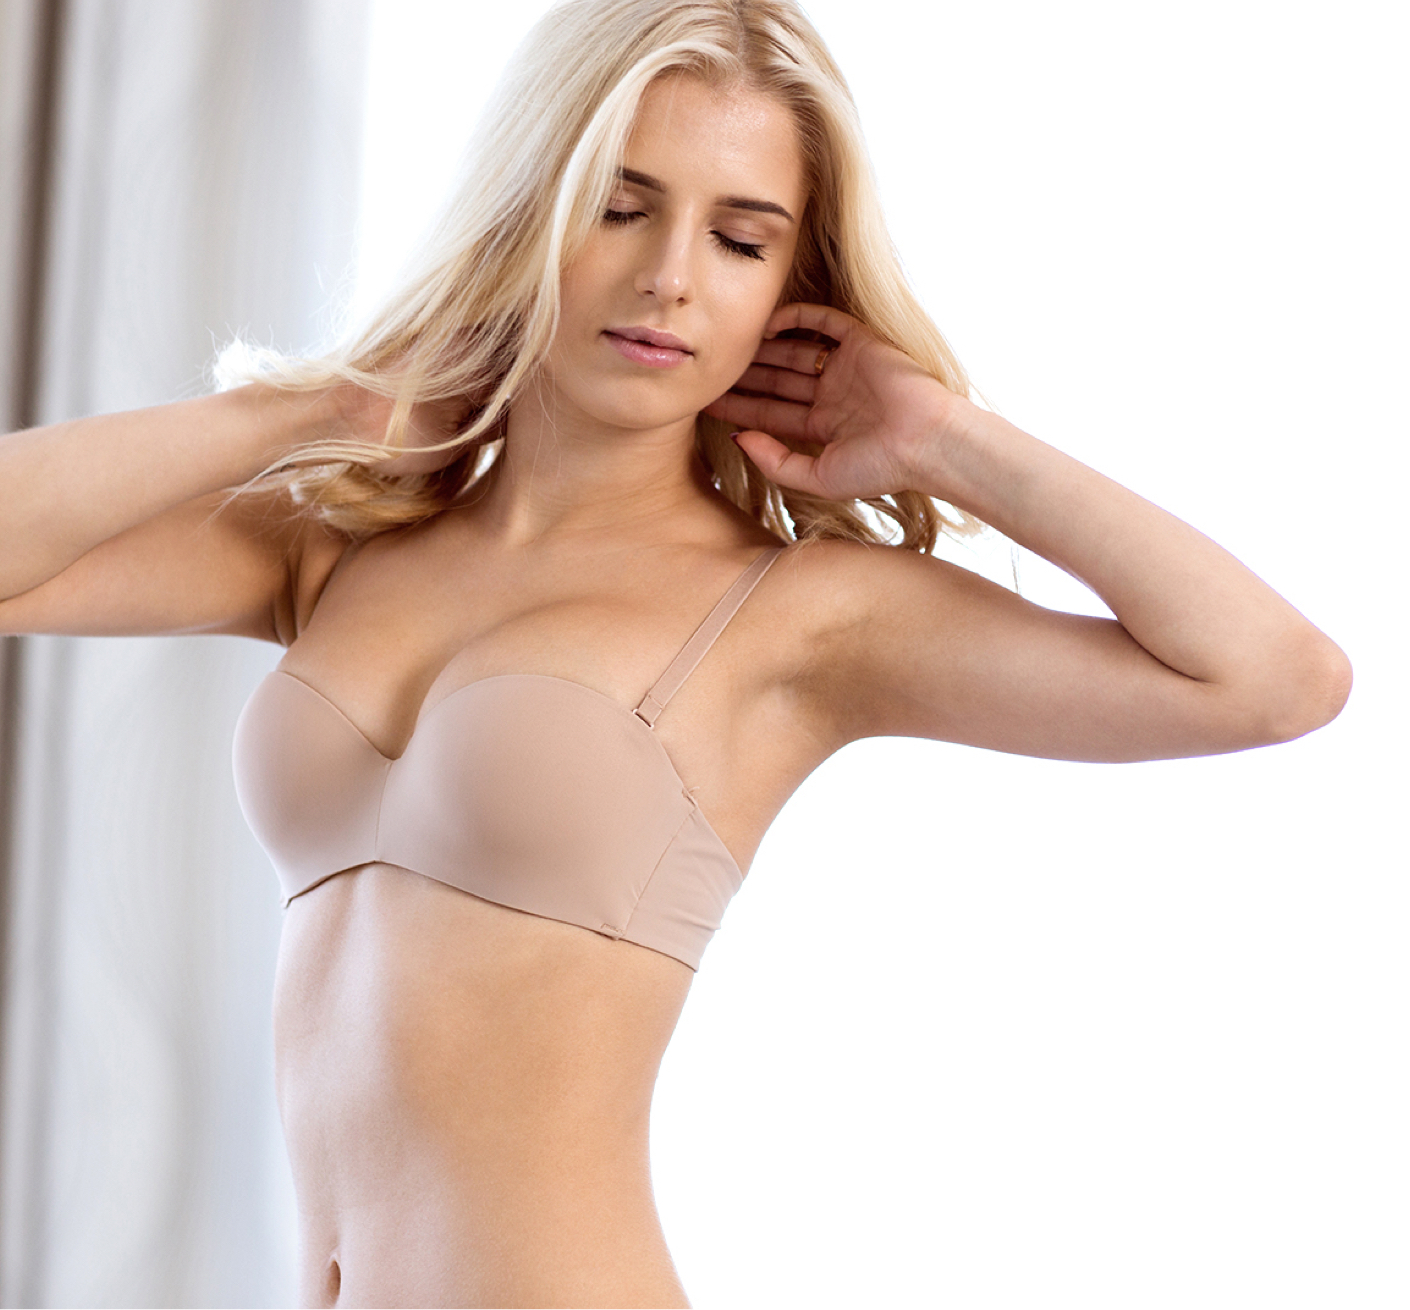 Blonde woman in bra